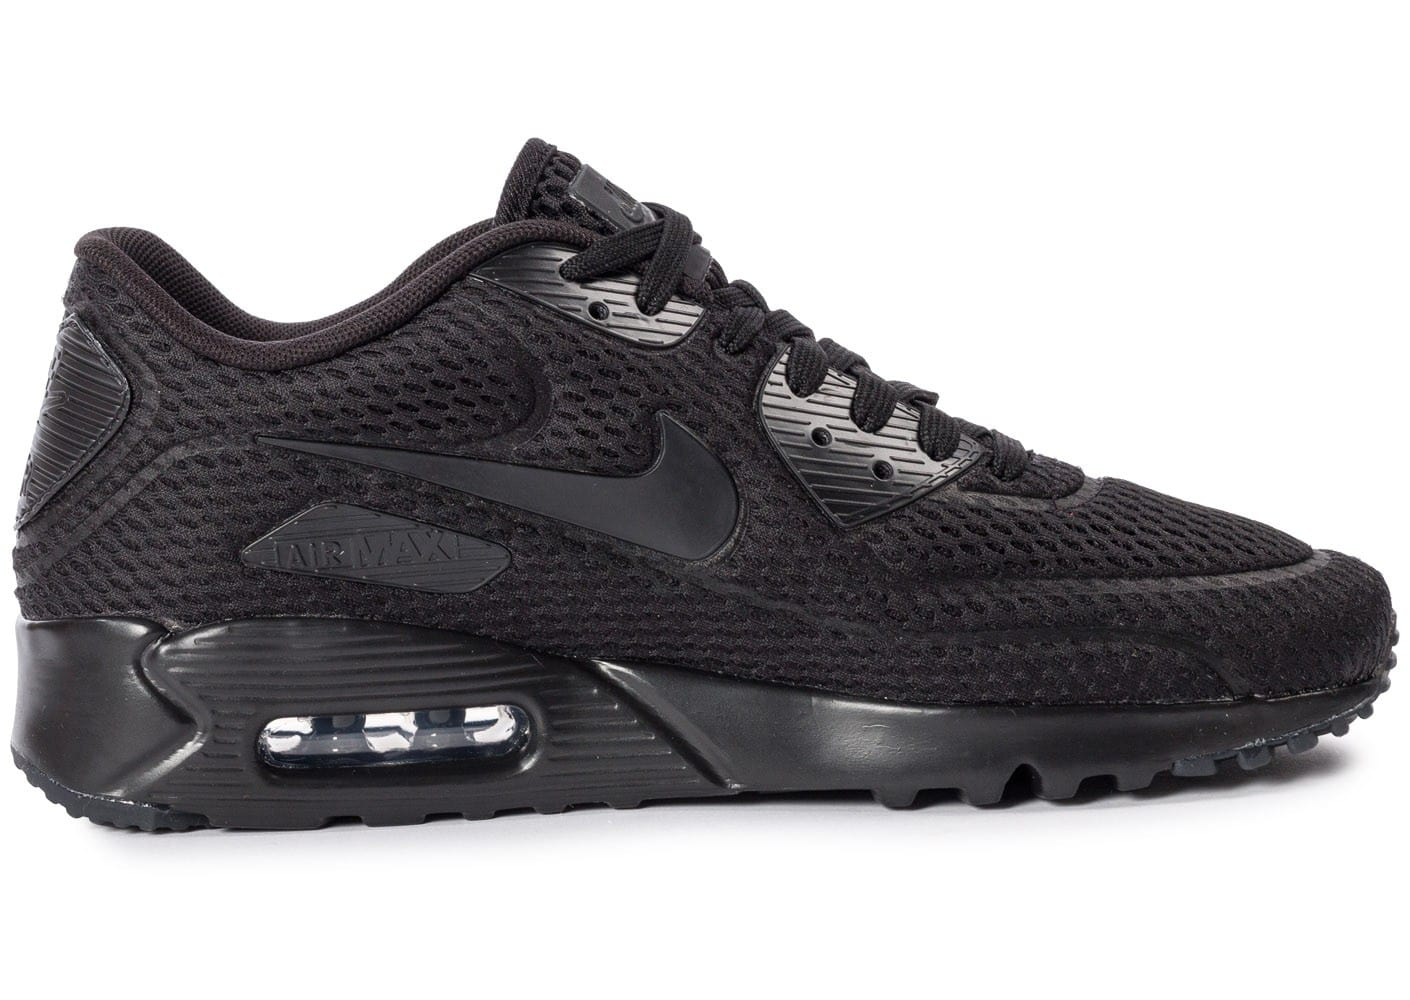 huge discount 1e143 e7500 chaussures nike air max 90 ultra br noire vue interieure